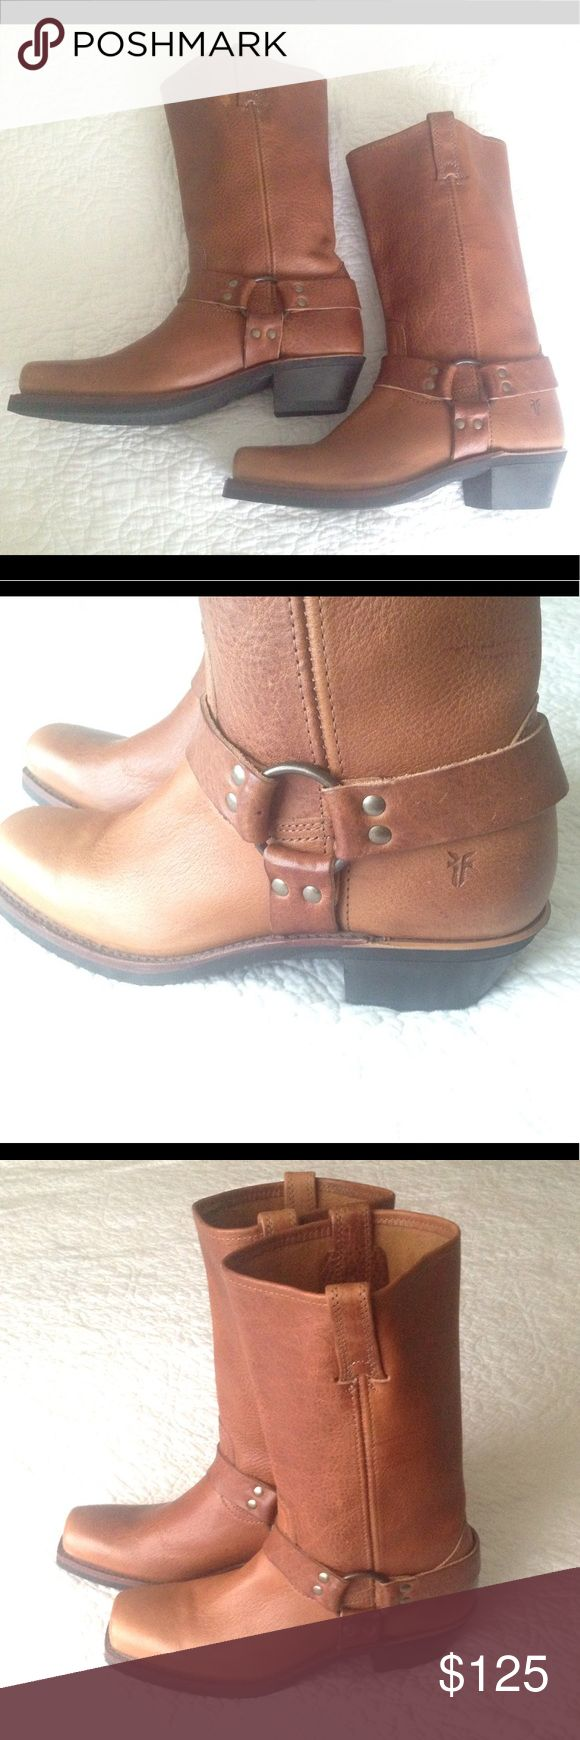 FRYE Brown Cowboy BOOTS NWT FRYE Brown Cowboy Boots NWT Brand new woman's boots. Excellent quality, thick rugged soles, soft comfortable leather. Great for a bohemian look or with summer dresses, denim shorts or skinny jeans.        9 1/2 Wide Frye Shoes